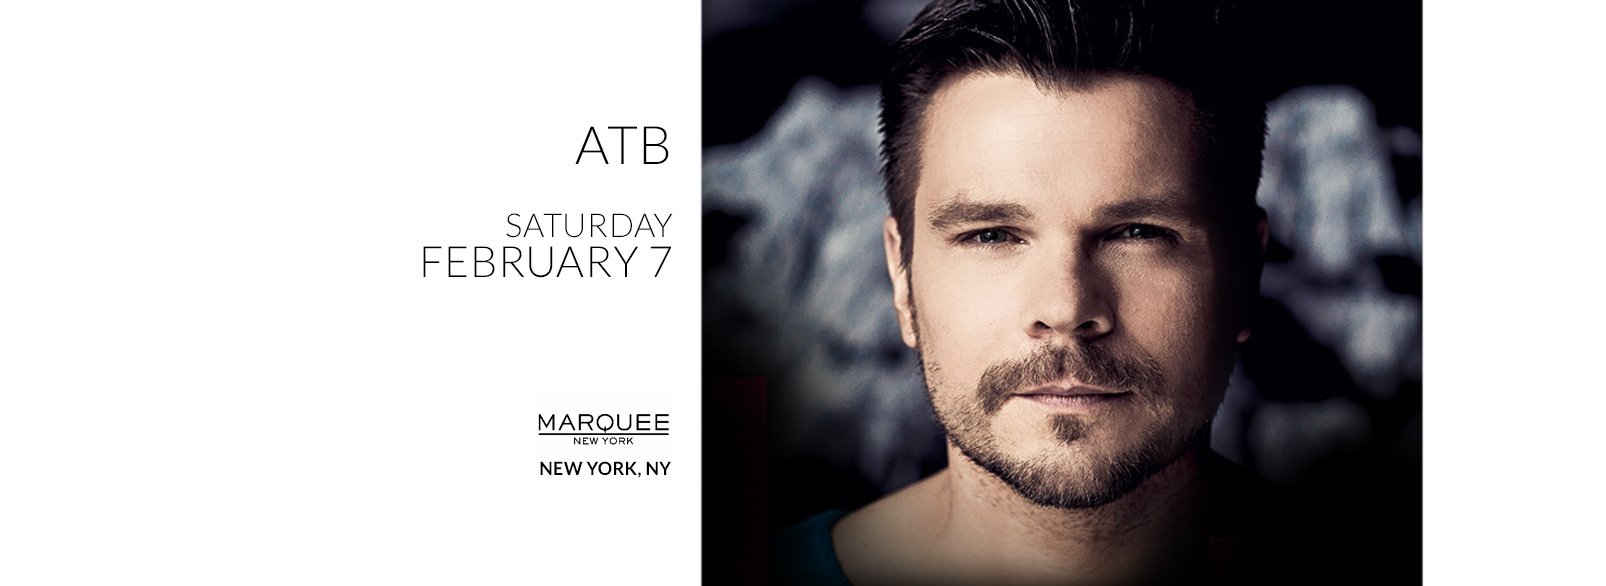 ATB @ Marquee NYC